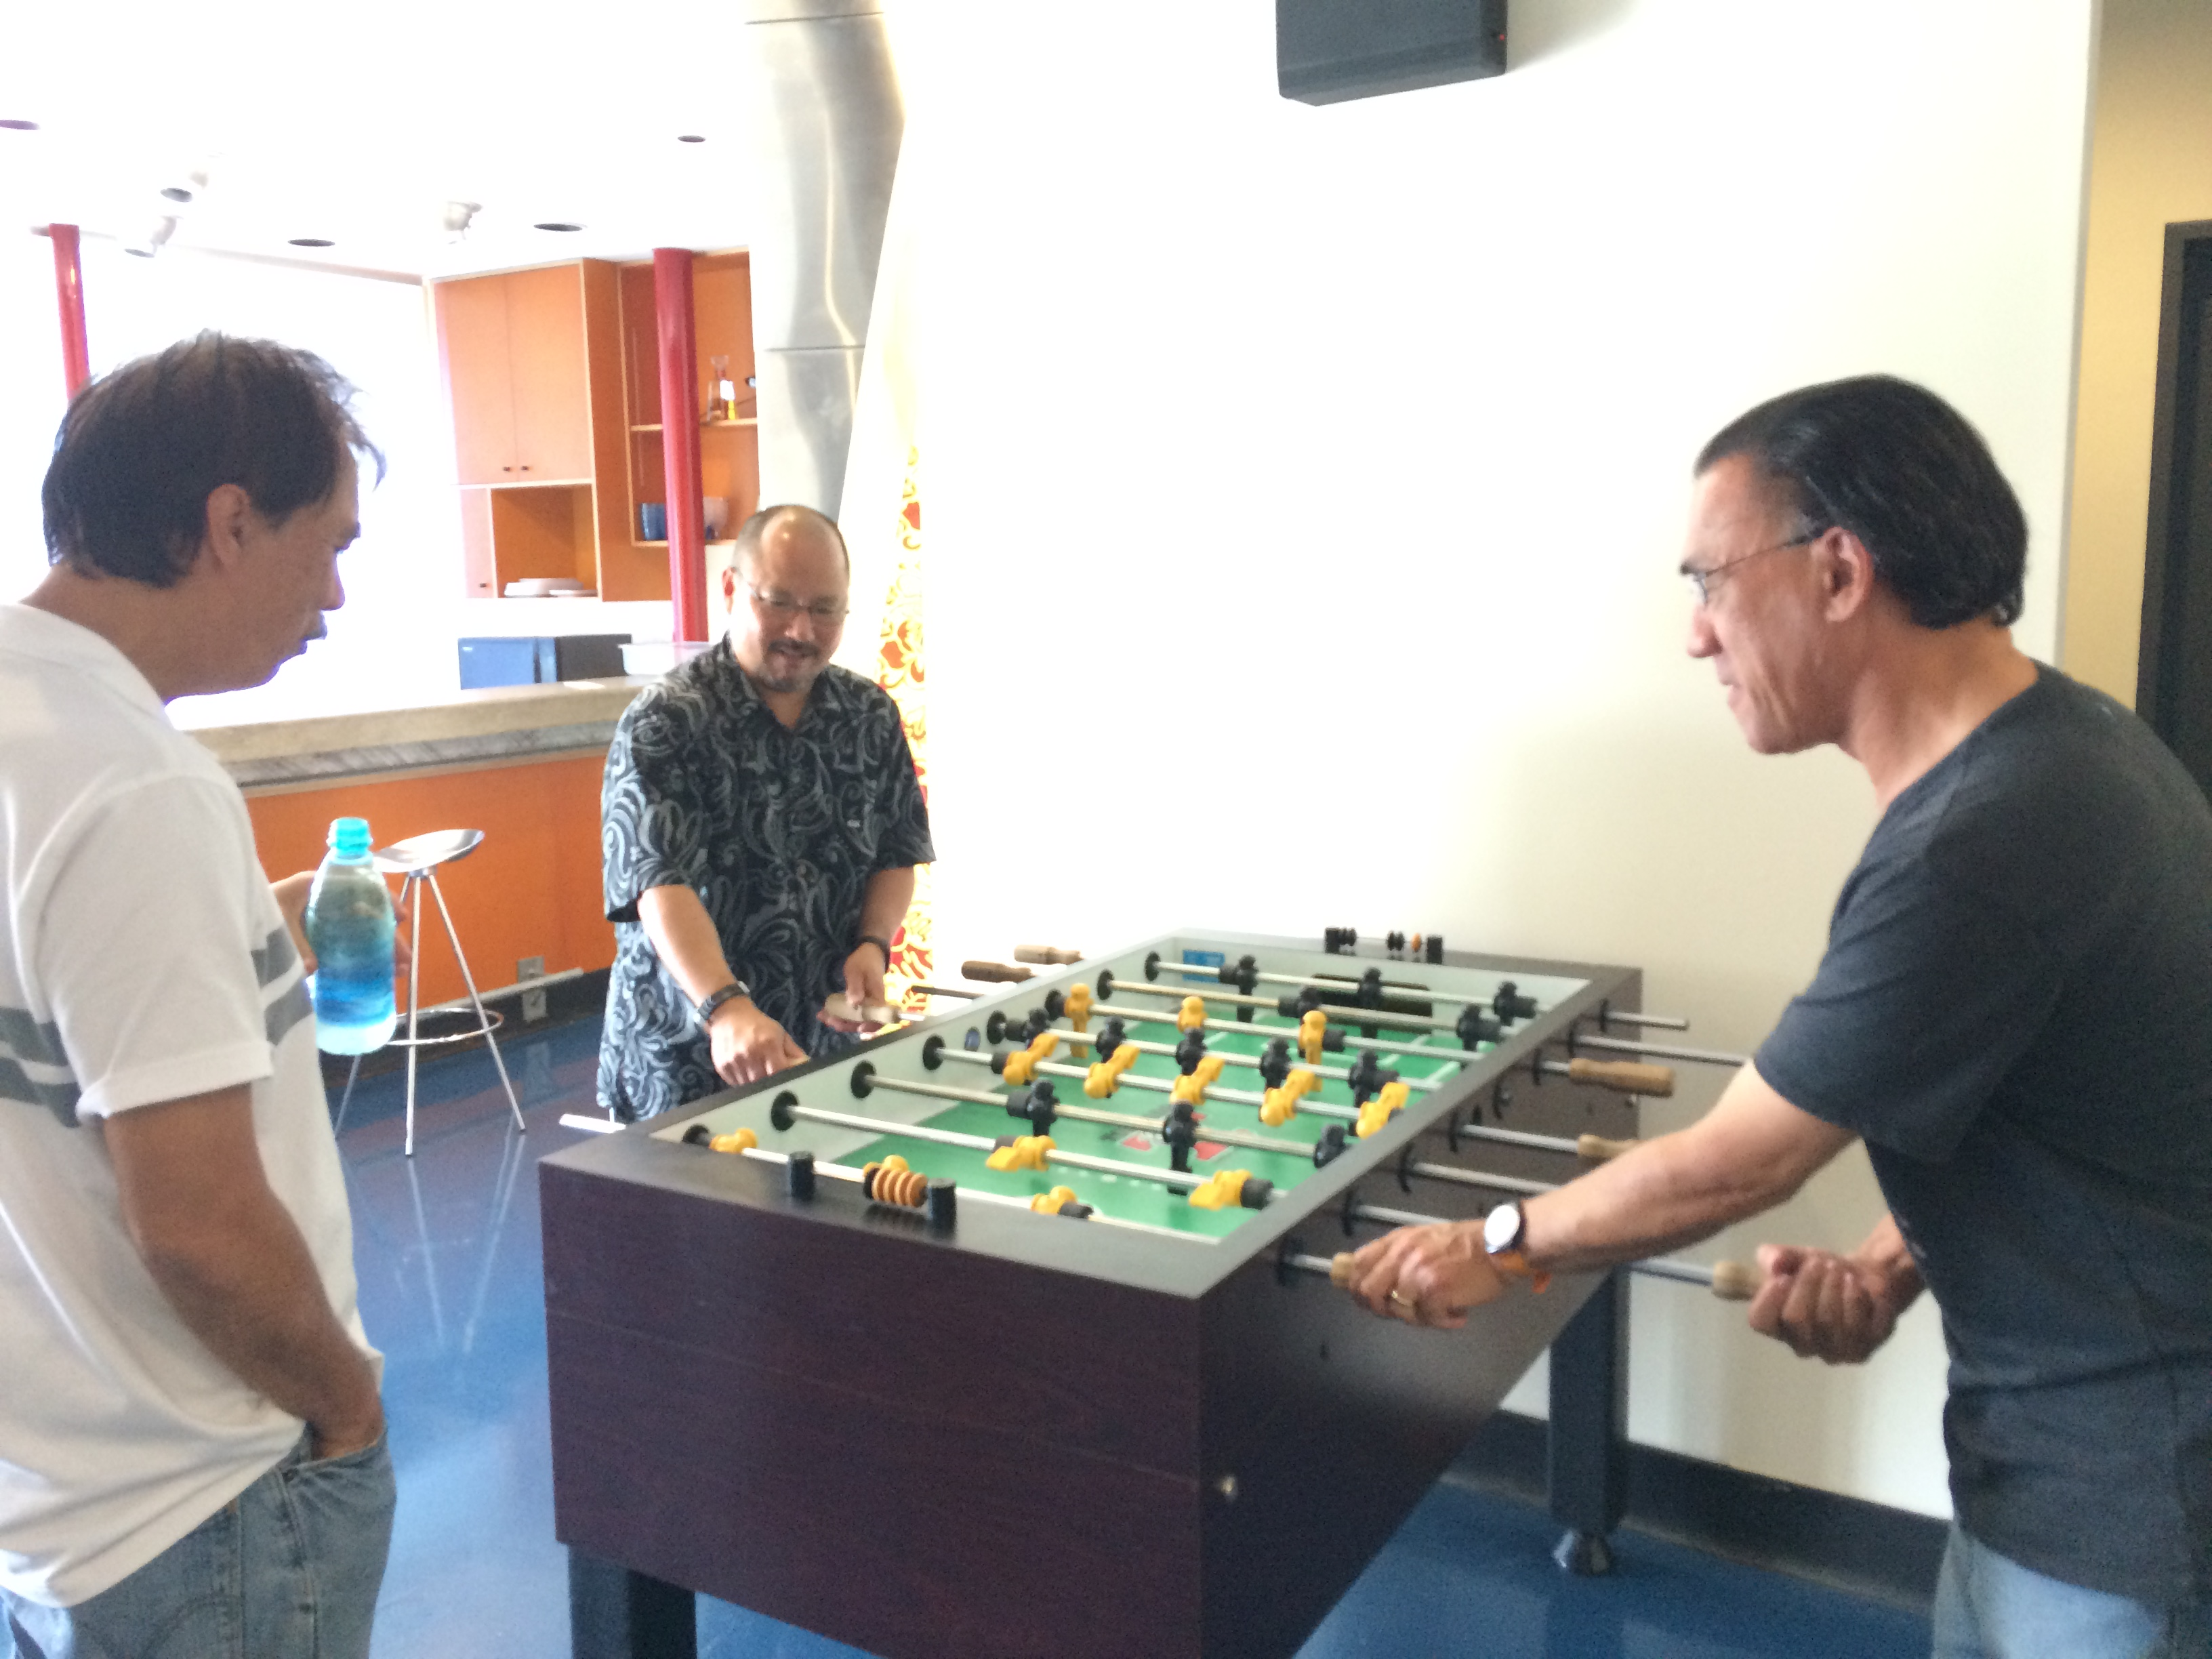 And they have a foosball table!